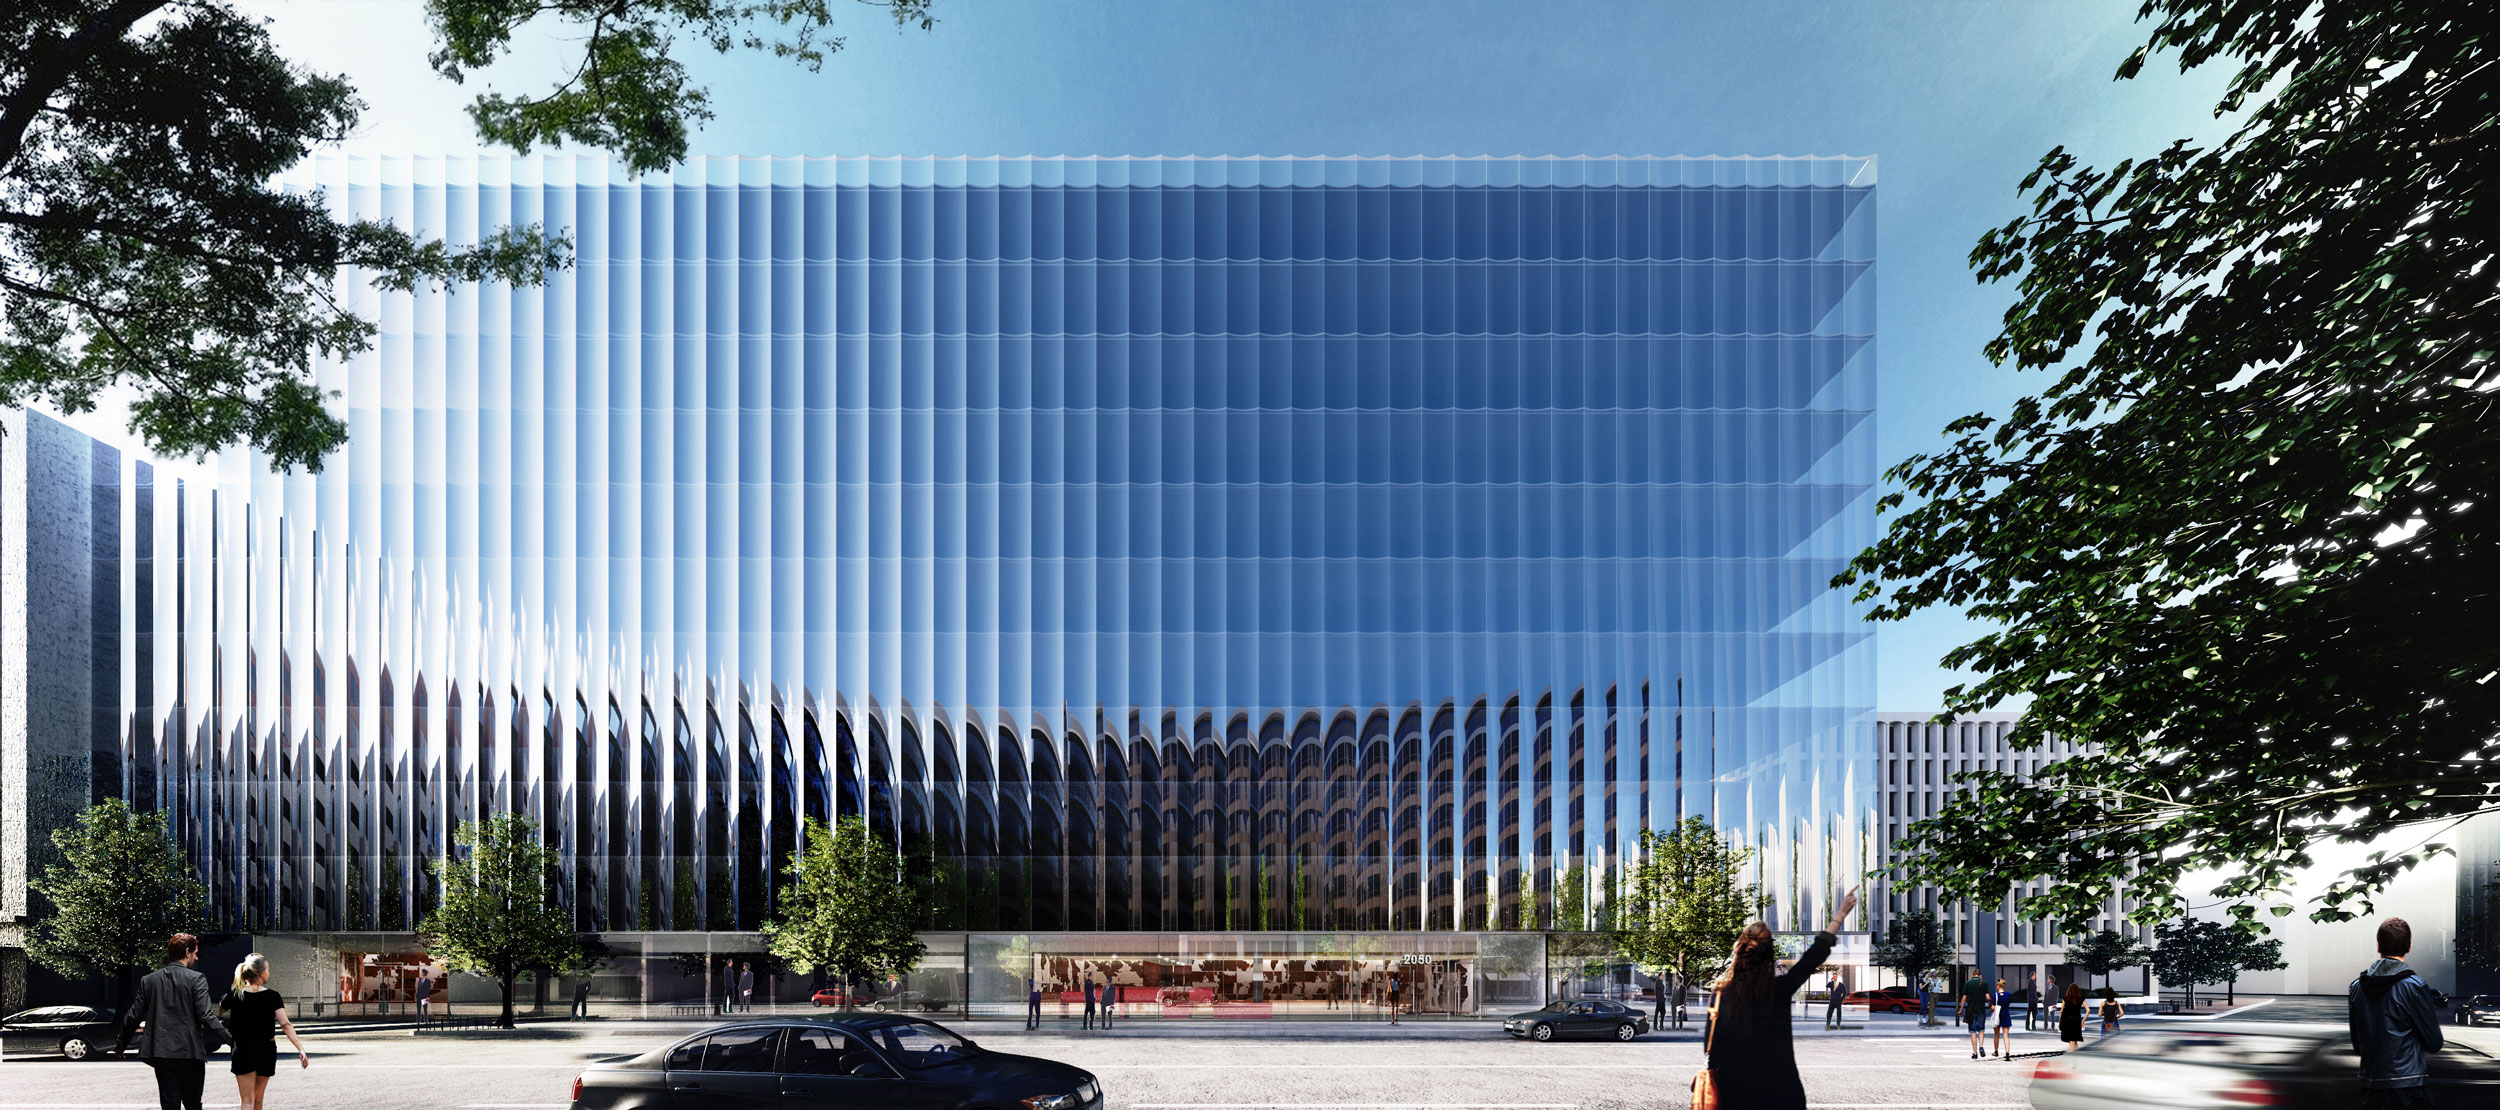 Office Building Architecture rex unveils a fluted glass office building in washington, d.c.